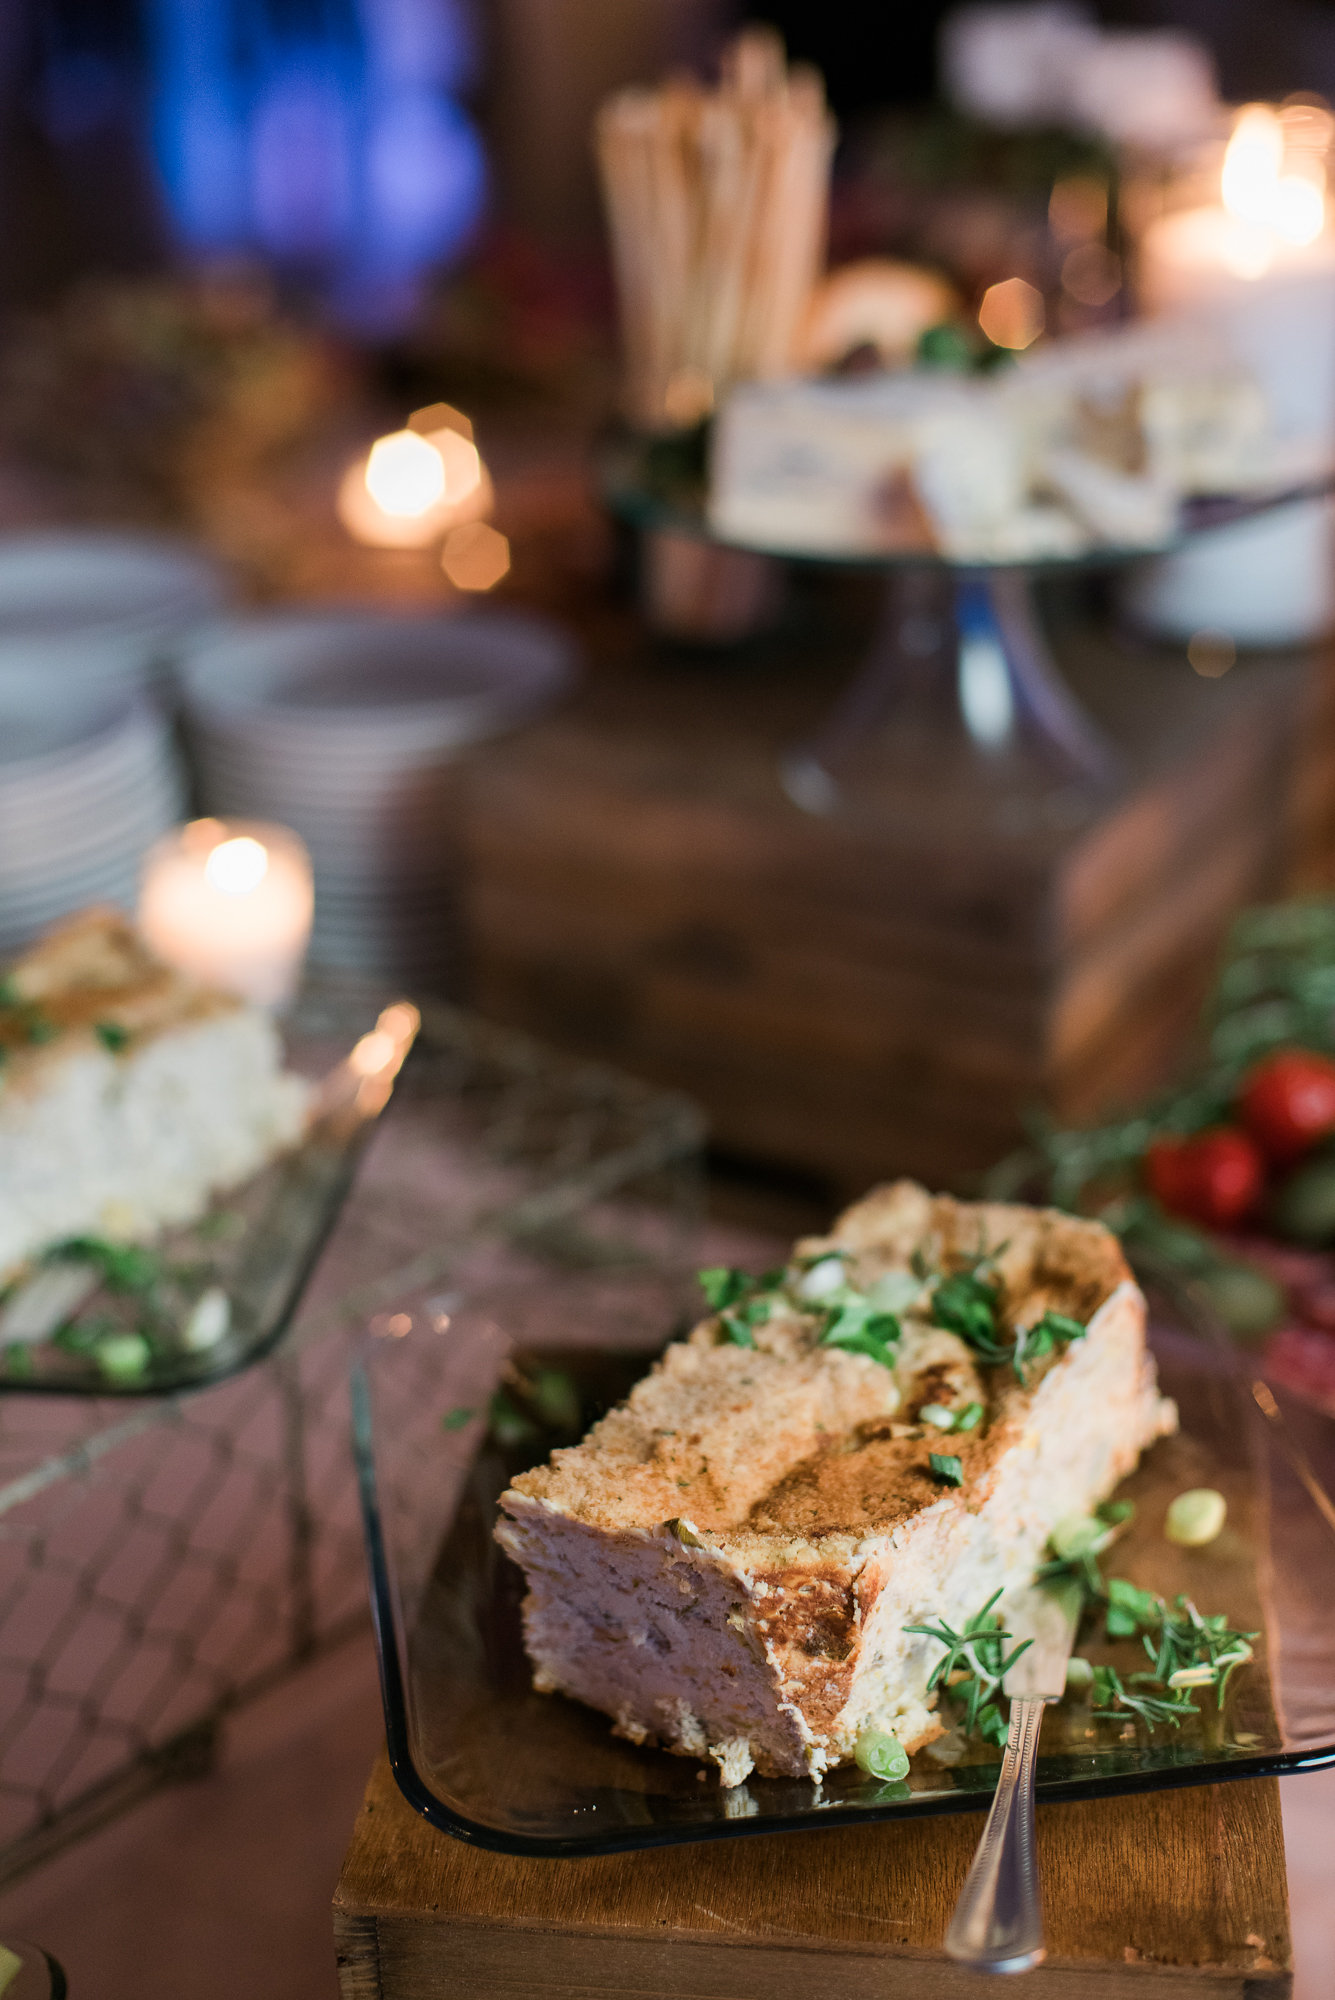 A recipe from the chef bleu cheese cheesecake toulouse gourmet catering - Cuisine easy toulouse ...